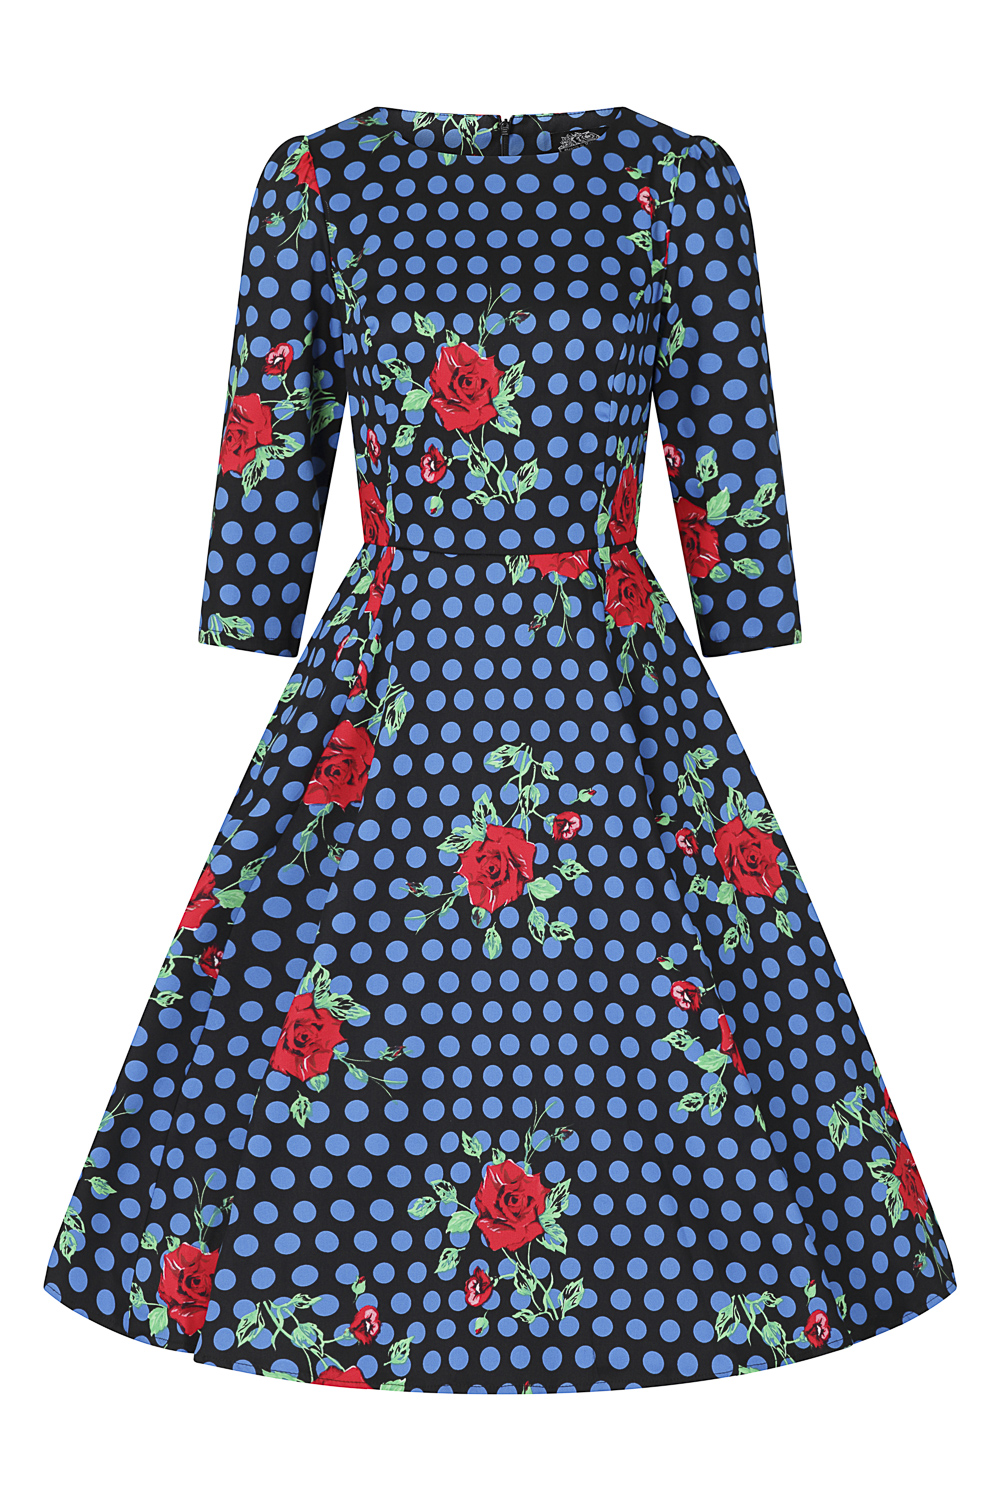 Olivia Rose Polka Dot Swing Dress